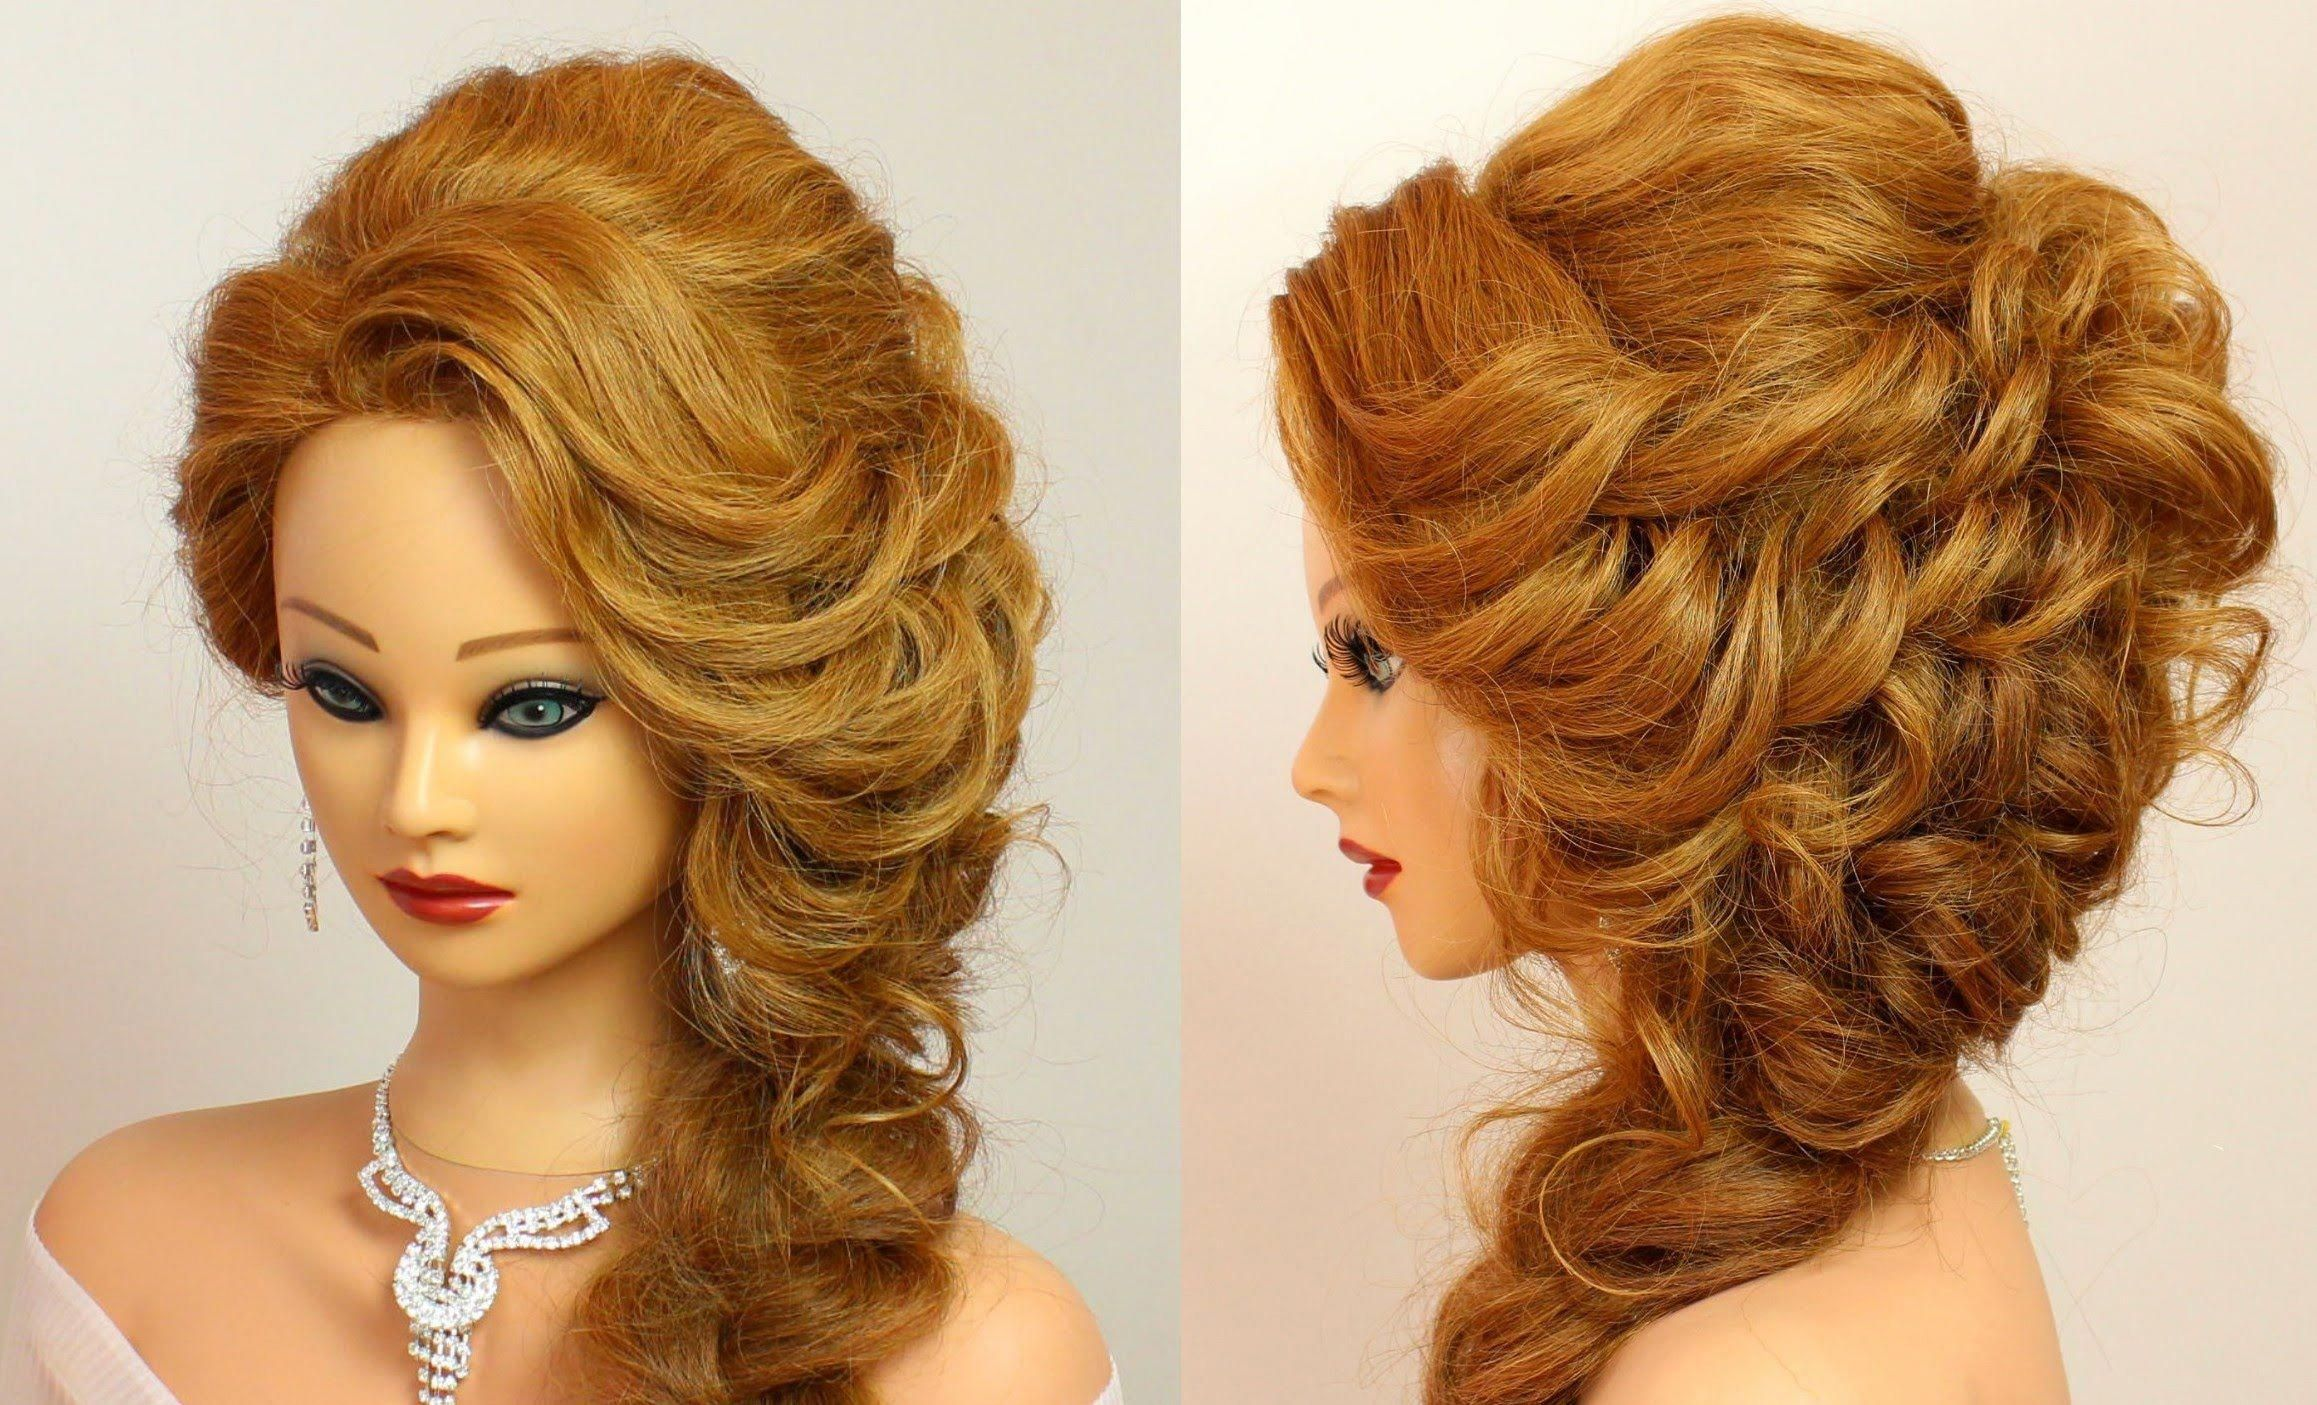 hairstyles prom curly hairstyle betterhairstyle fashhionhairstyles tutorial